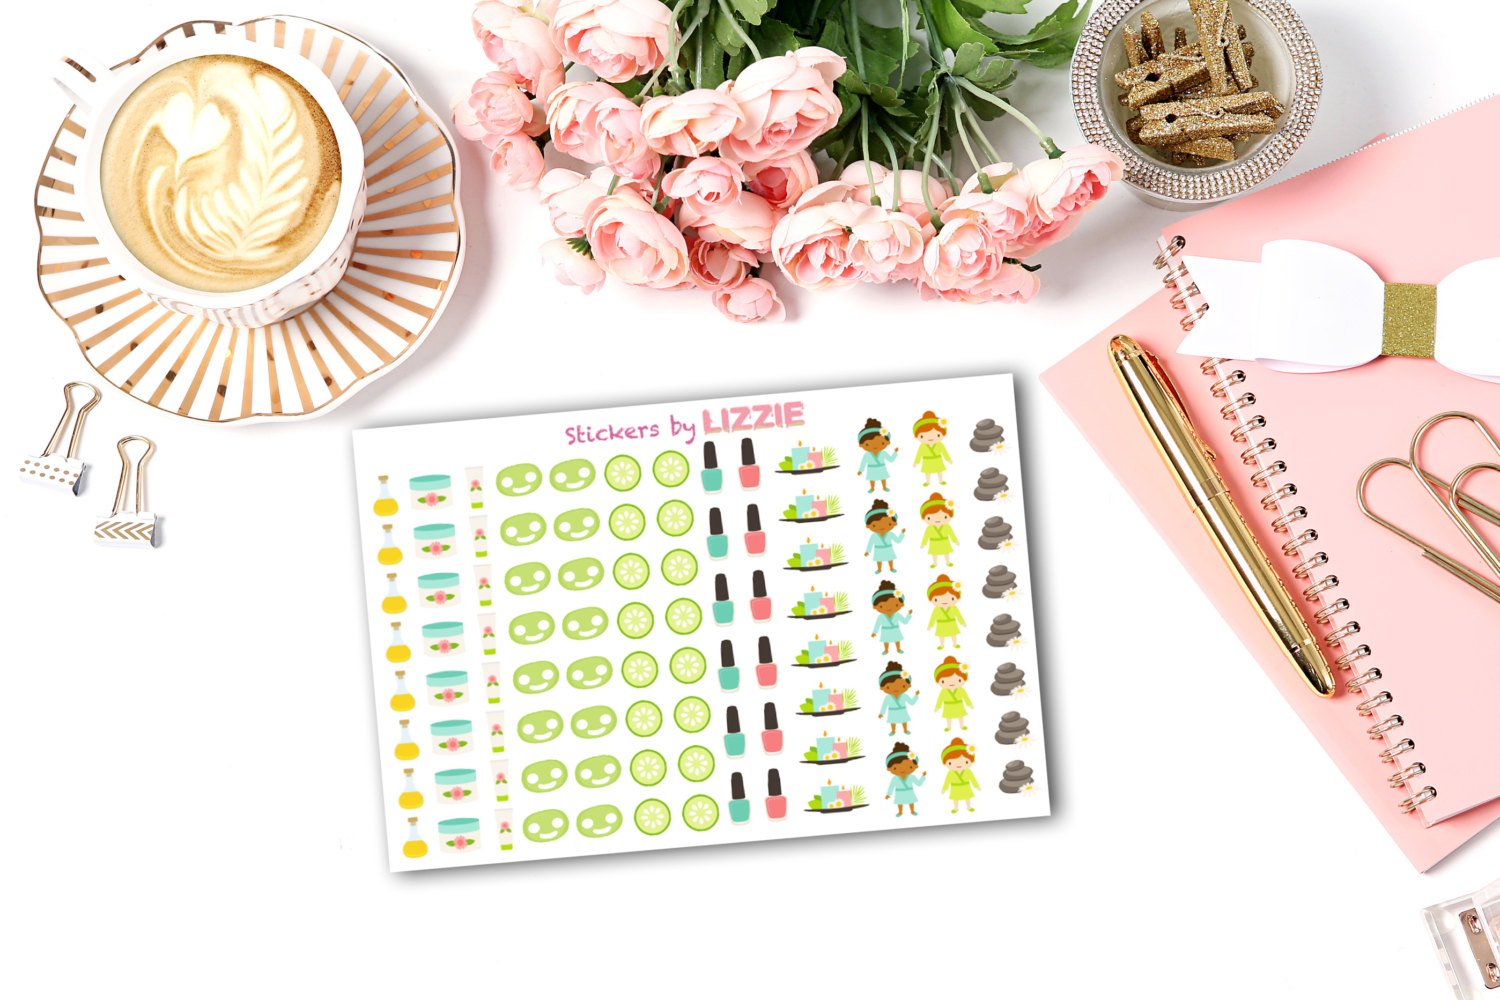 Spa/Pamper Day Stickers